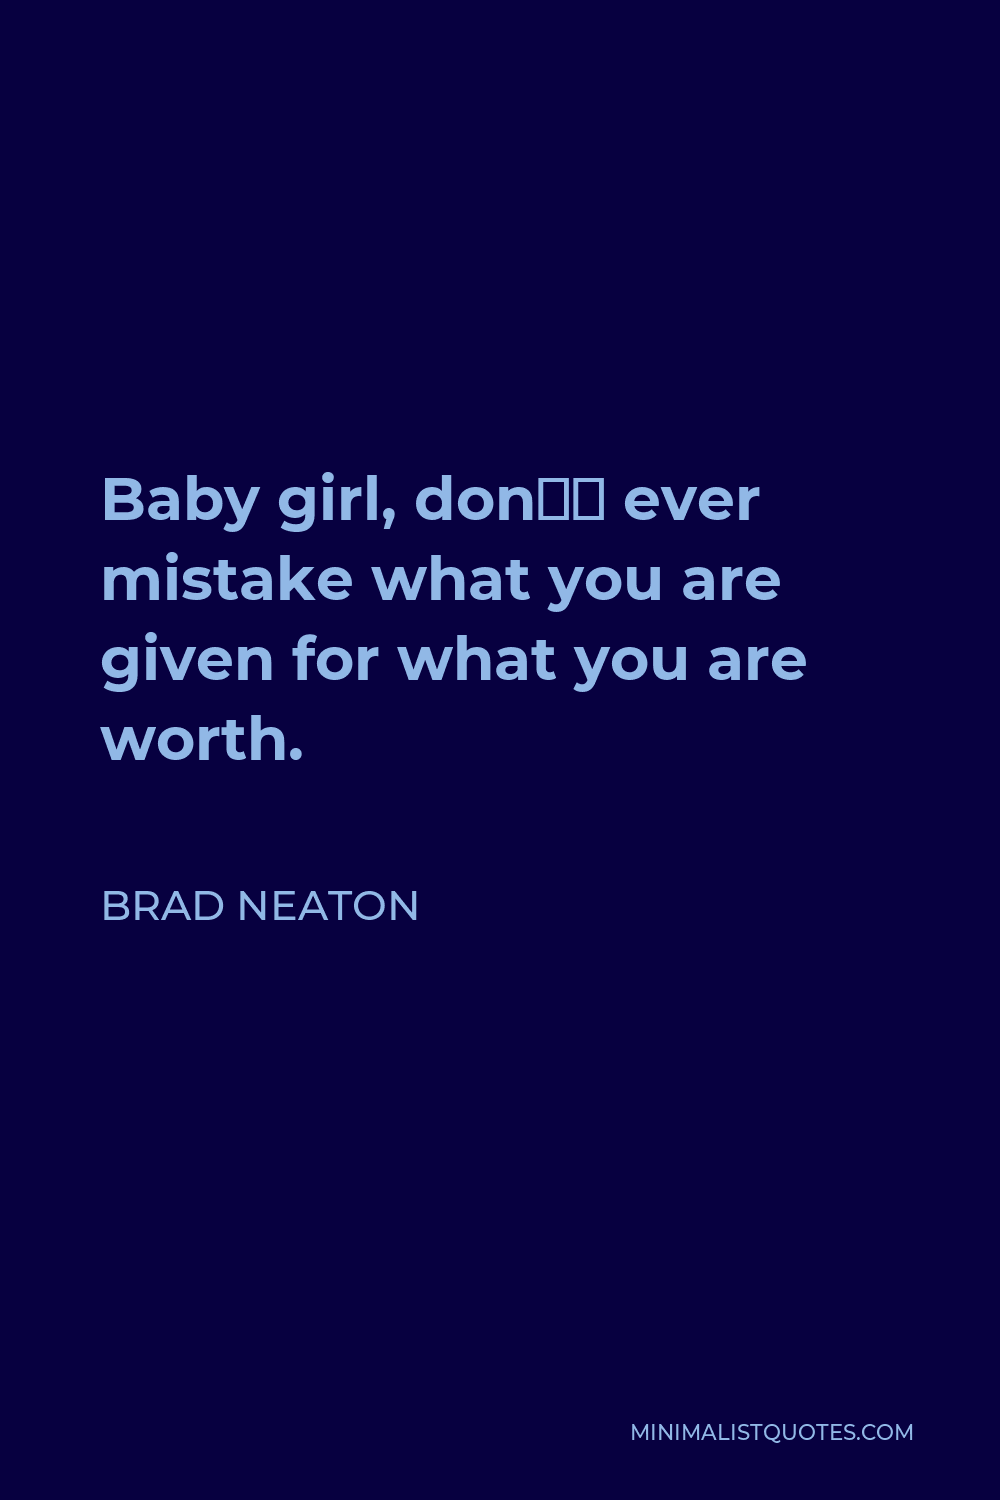 Brad Neaton Quote - Baby girl, don't ever mistake what you are given for what you are worth.